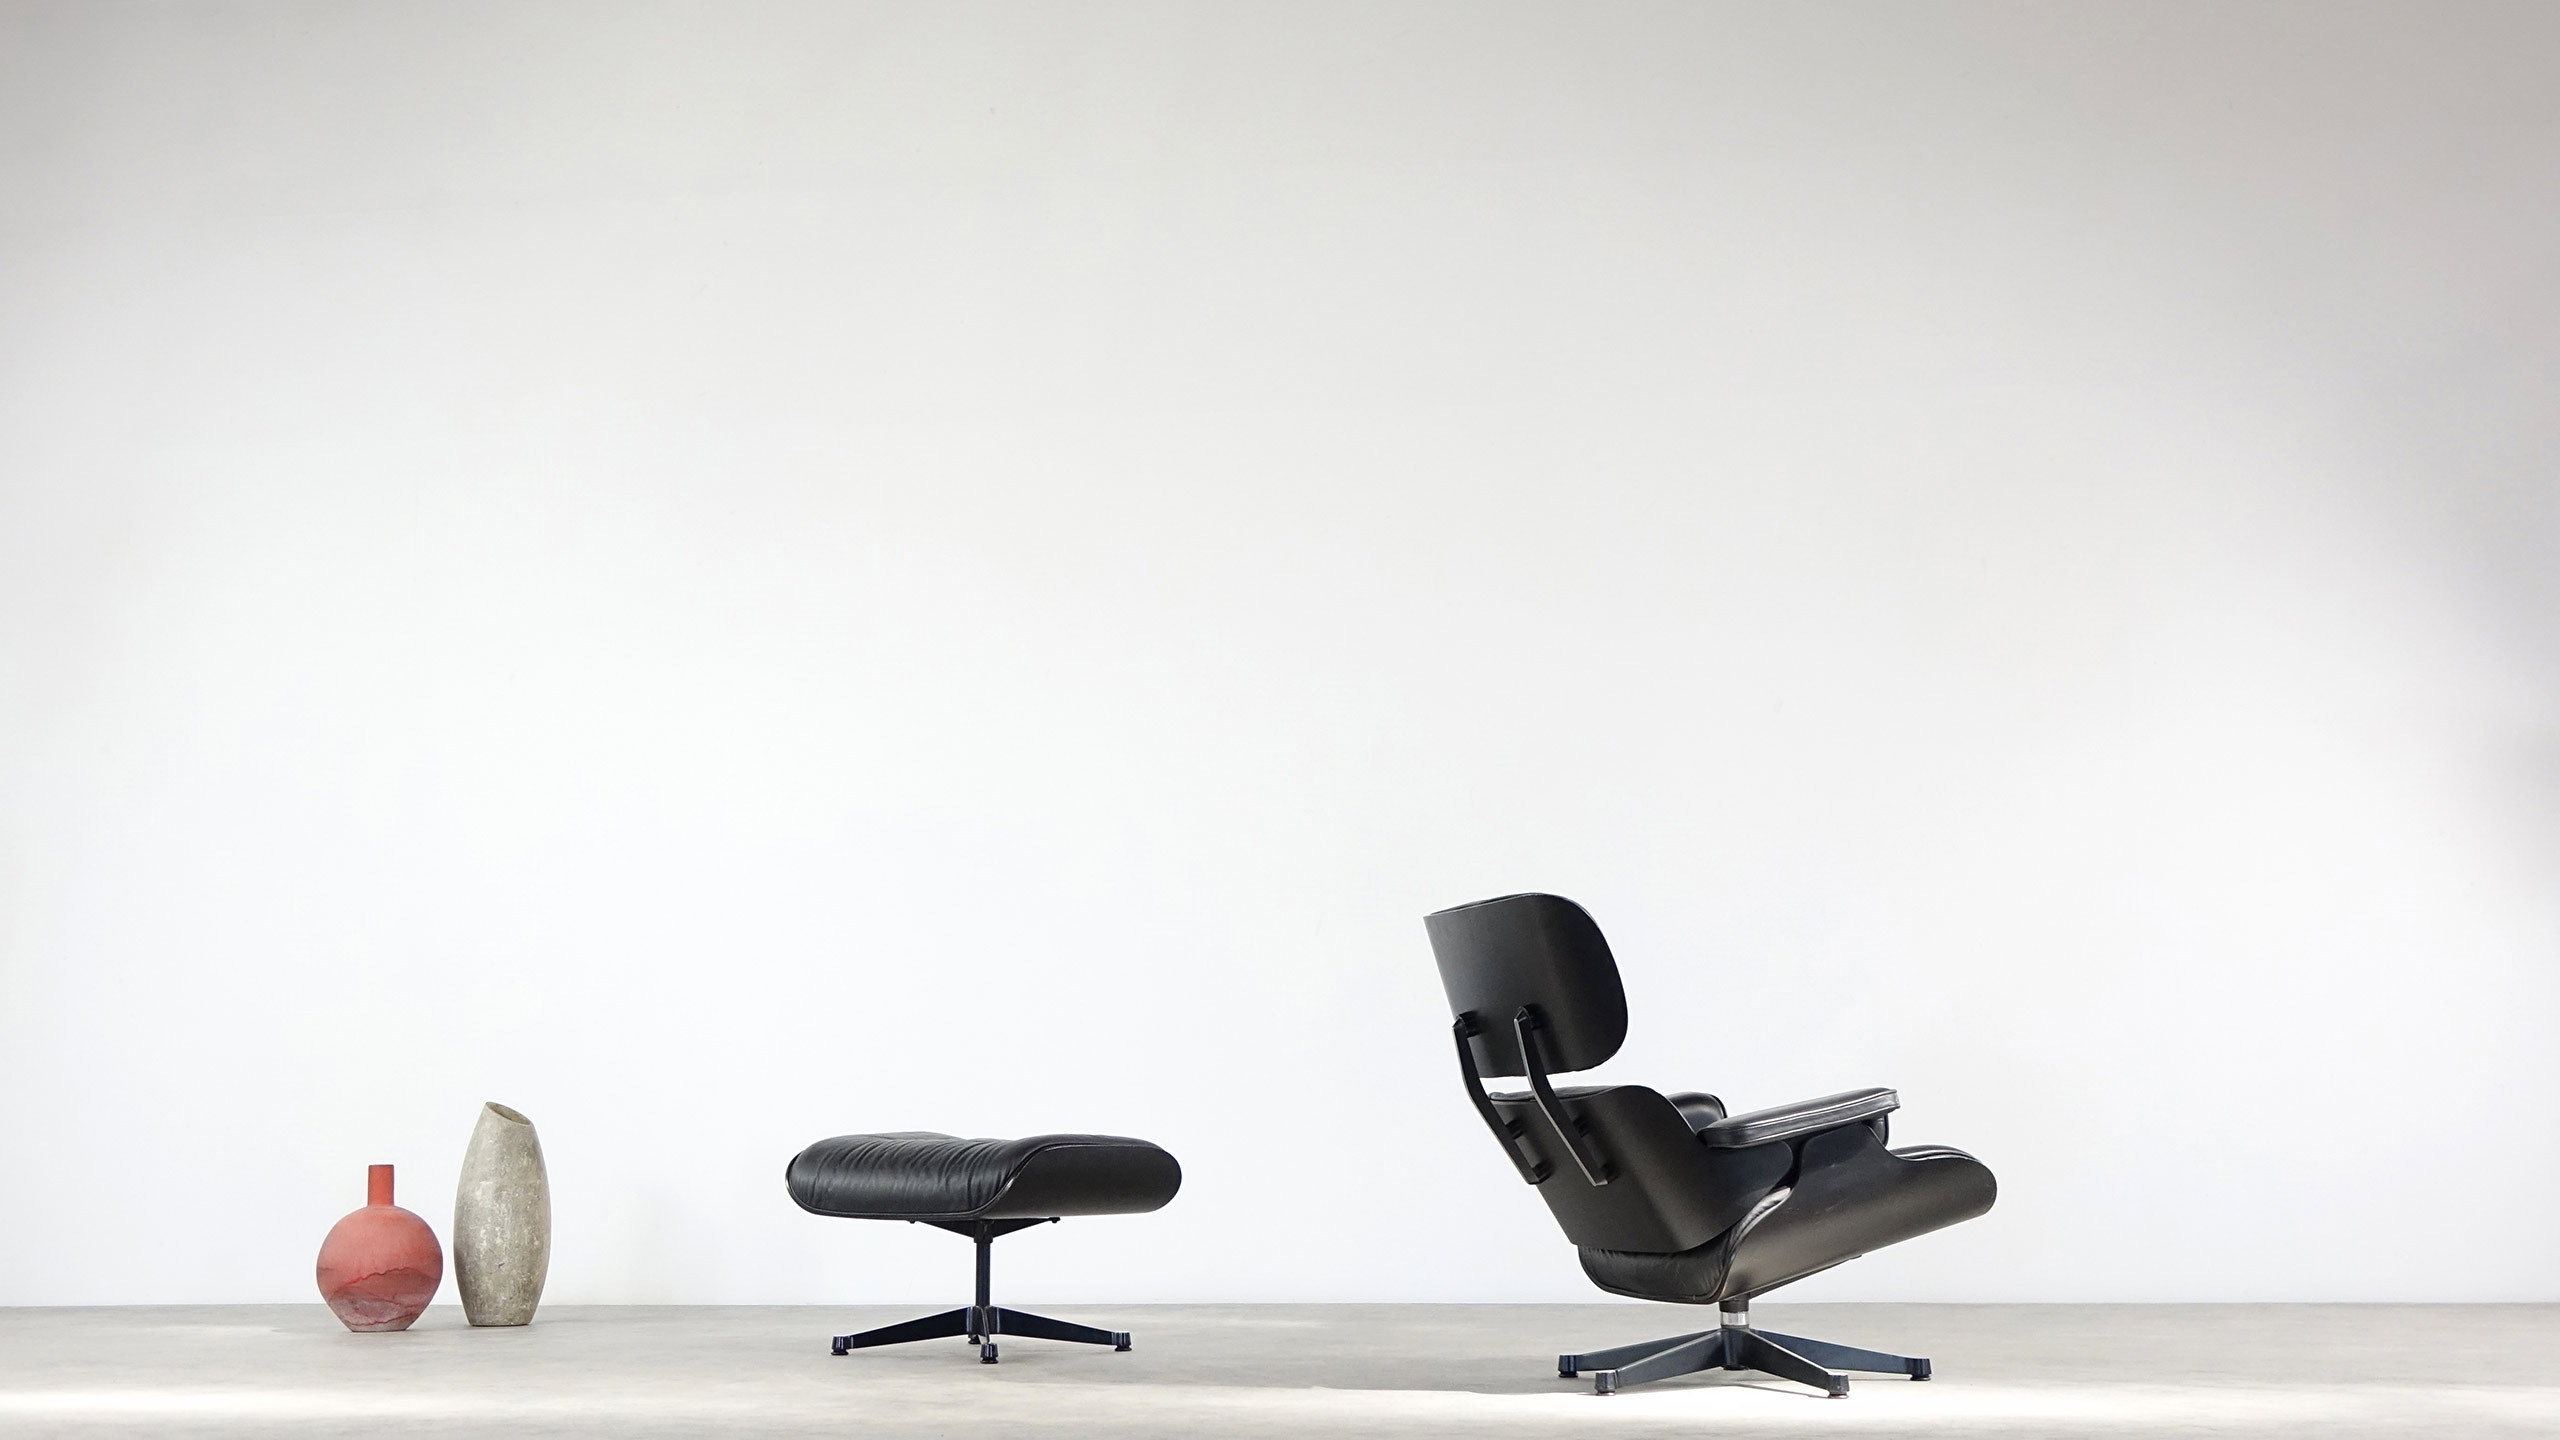 charles ray eames herman miller lounge chair vitra. Black Bedroom Furniture Sets. Home Design Ideas